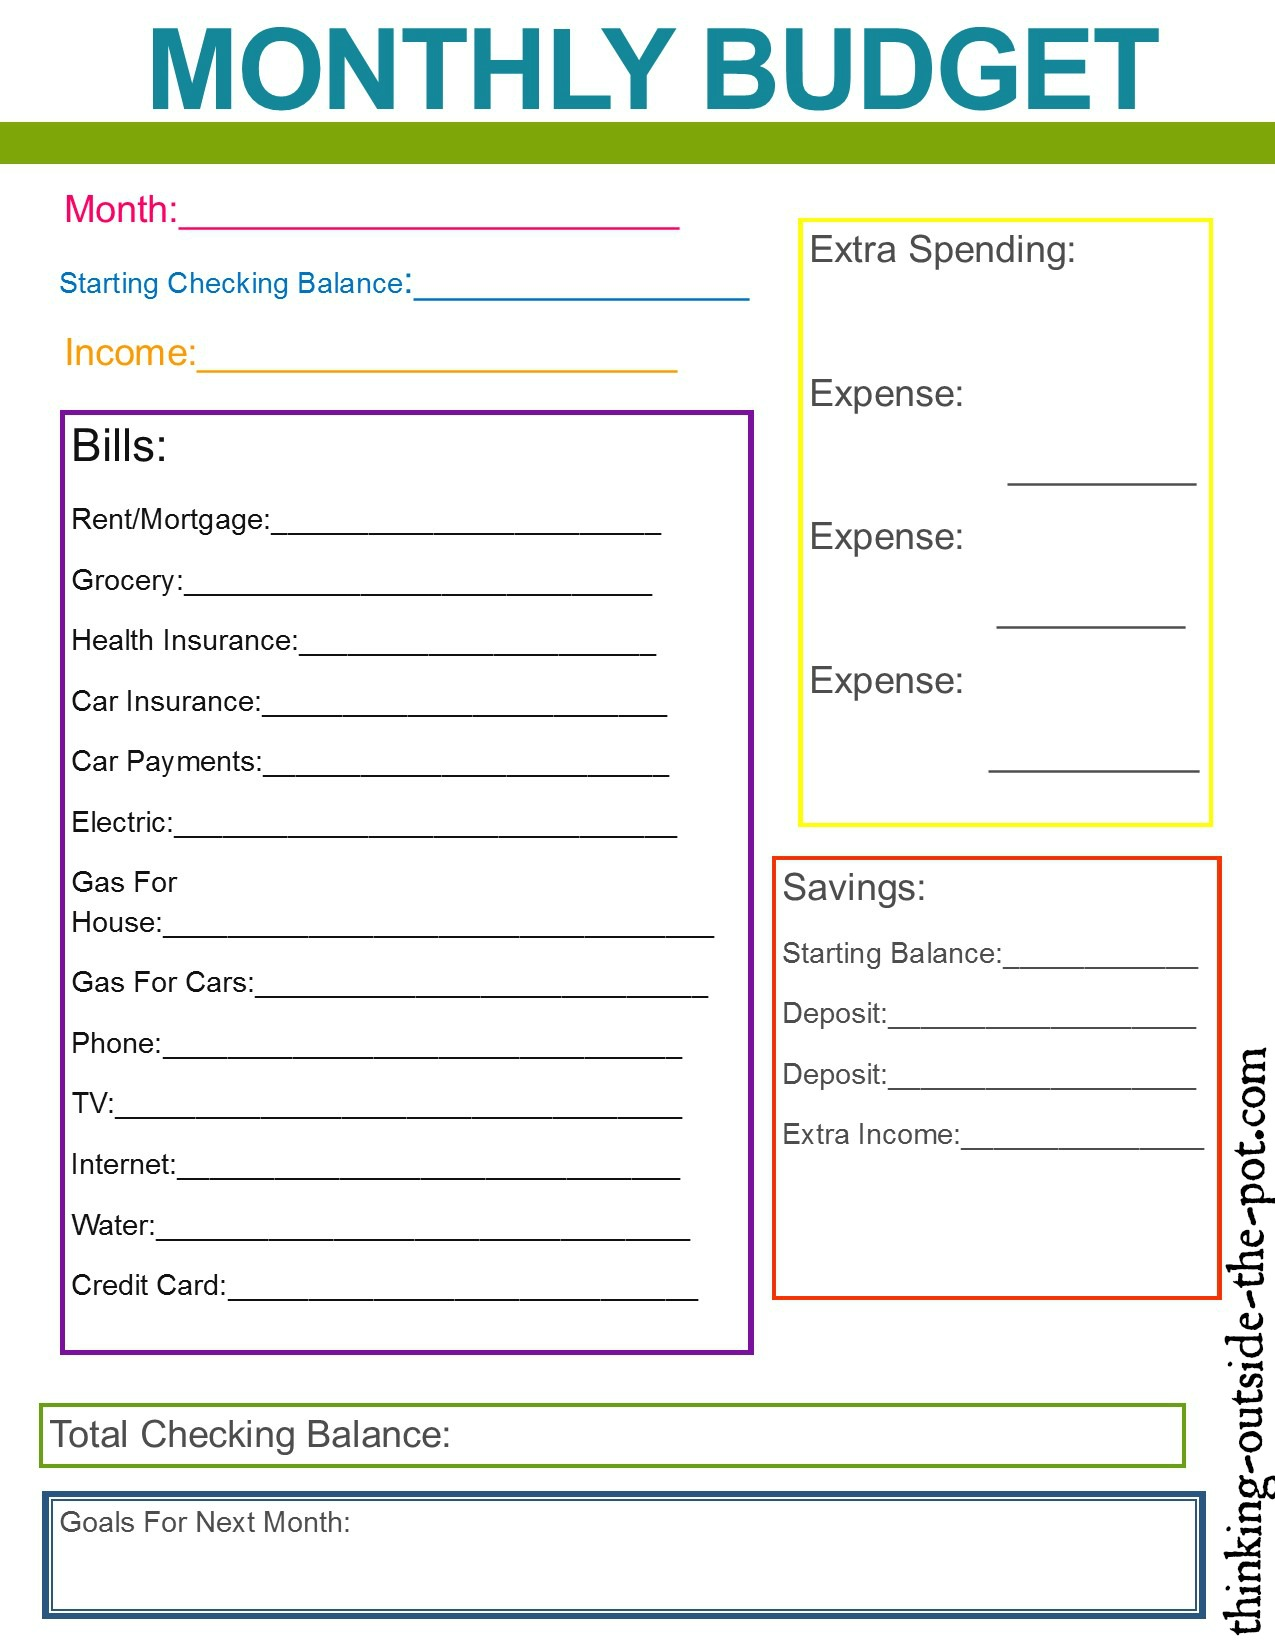 Worksheet Budget Weekly01